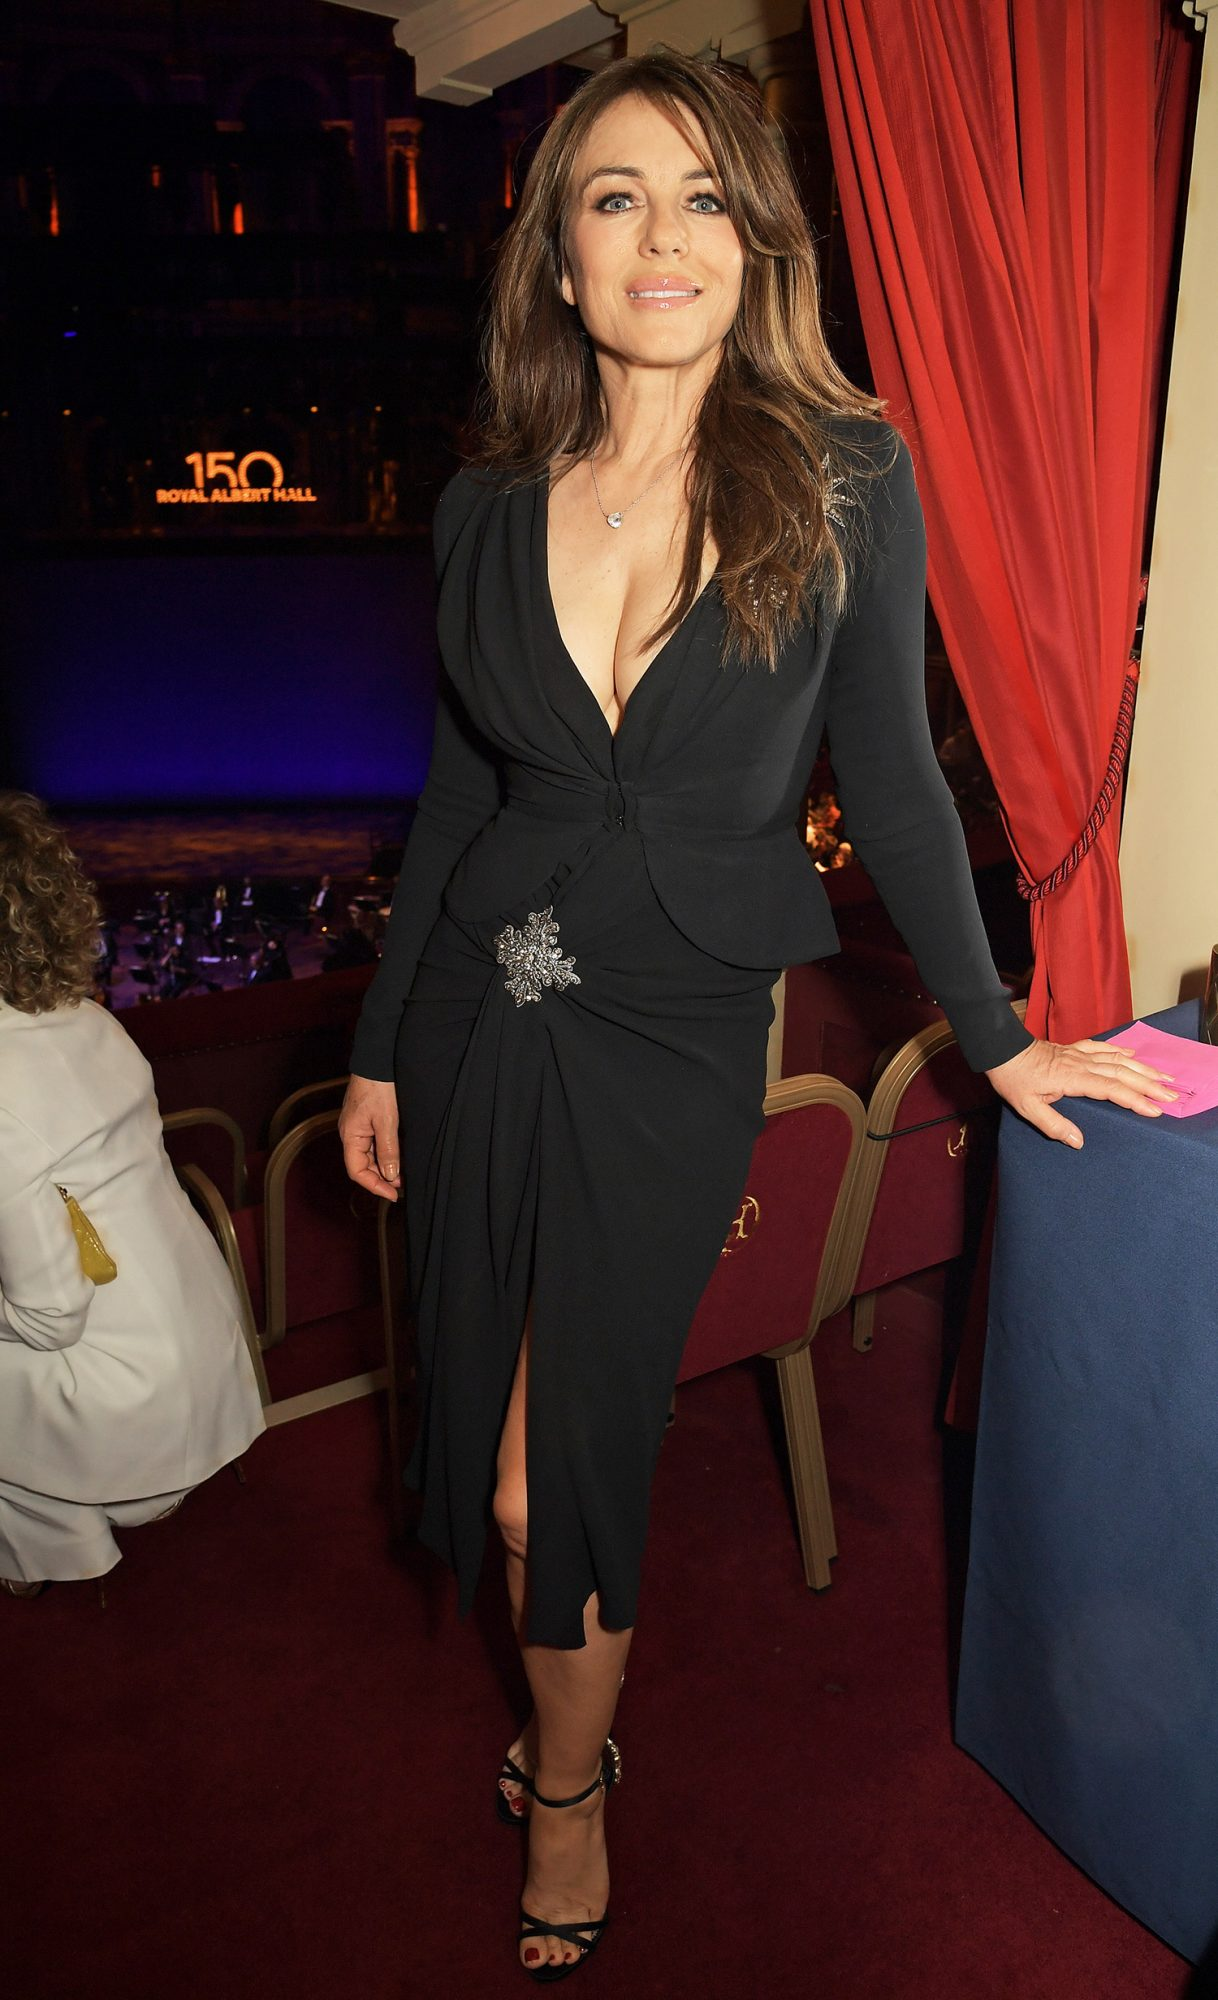 Elizabeth Hurley attends the inaugural British Ballet Charity Gala presented by Dame Darcey Bussell at The Royal Albert Hall on June 03, 2021 in London, England